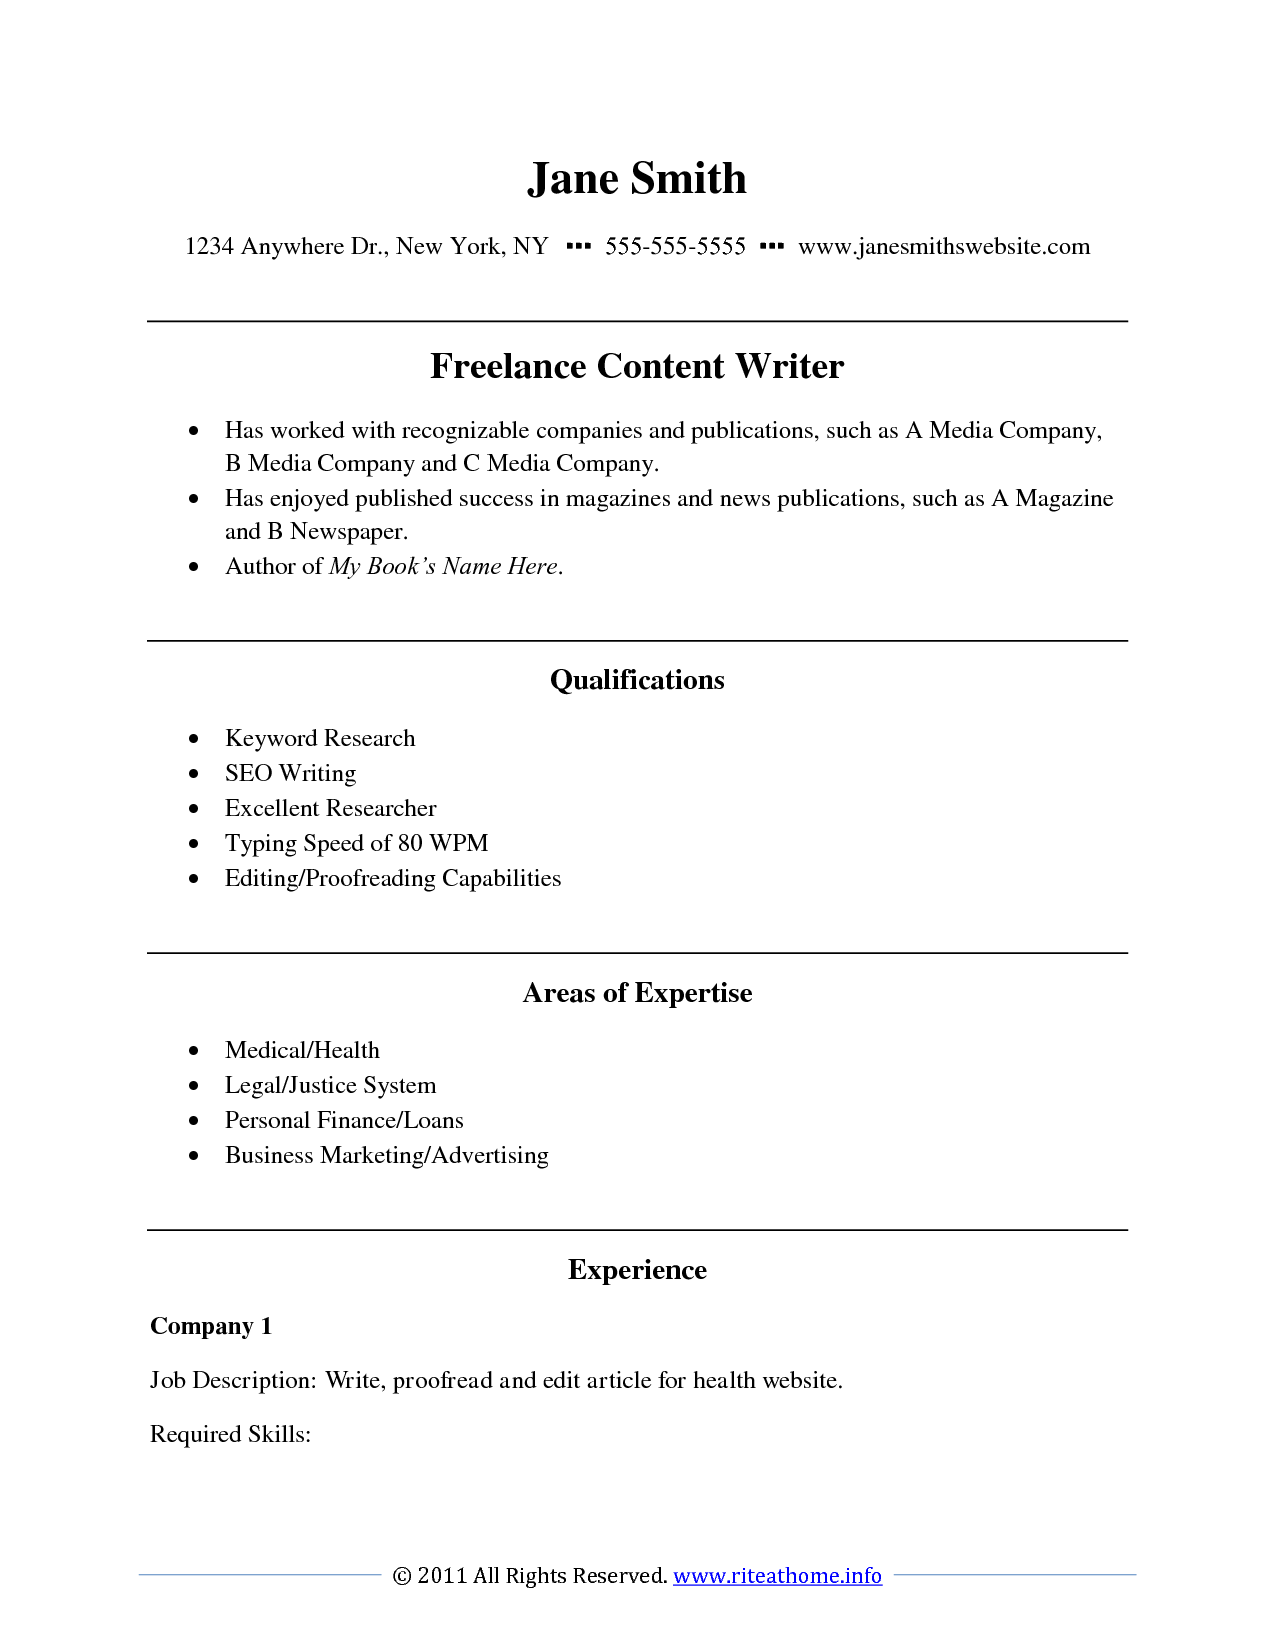 Resume Template Pinterest Resume Writing Examples Sample Resumes Hdwriting A Resume